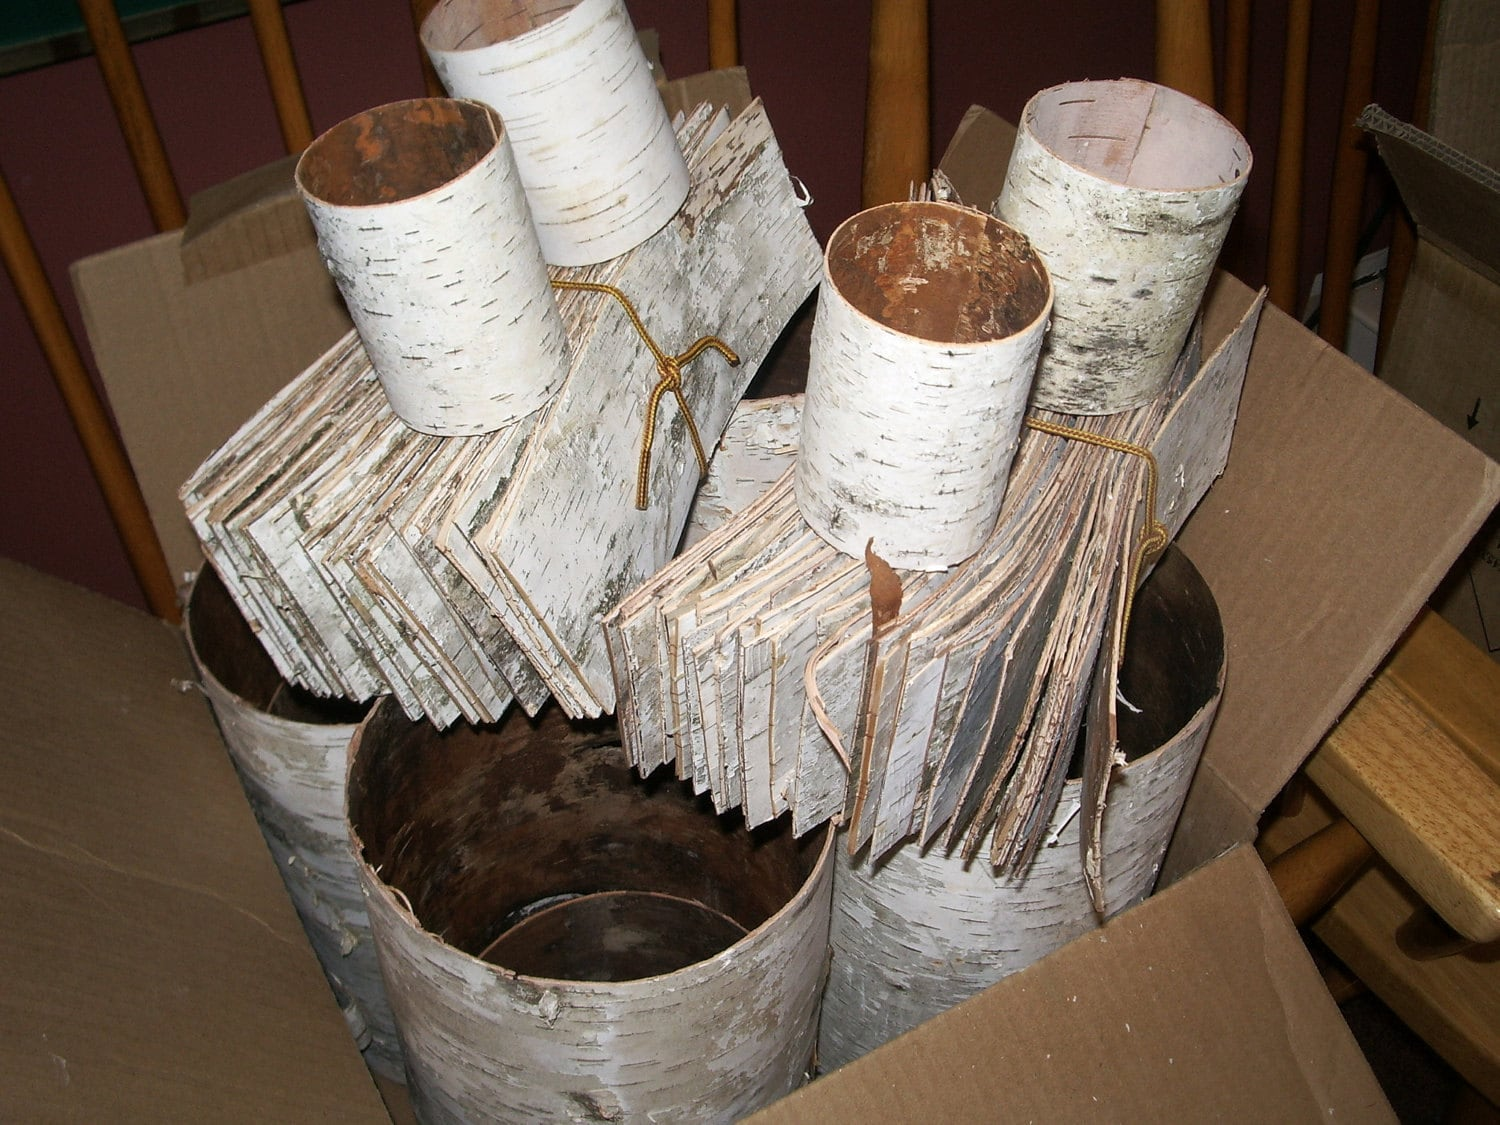 10 Birch Bark Sheets Tubes Crafts Decorations Rustic Natural